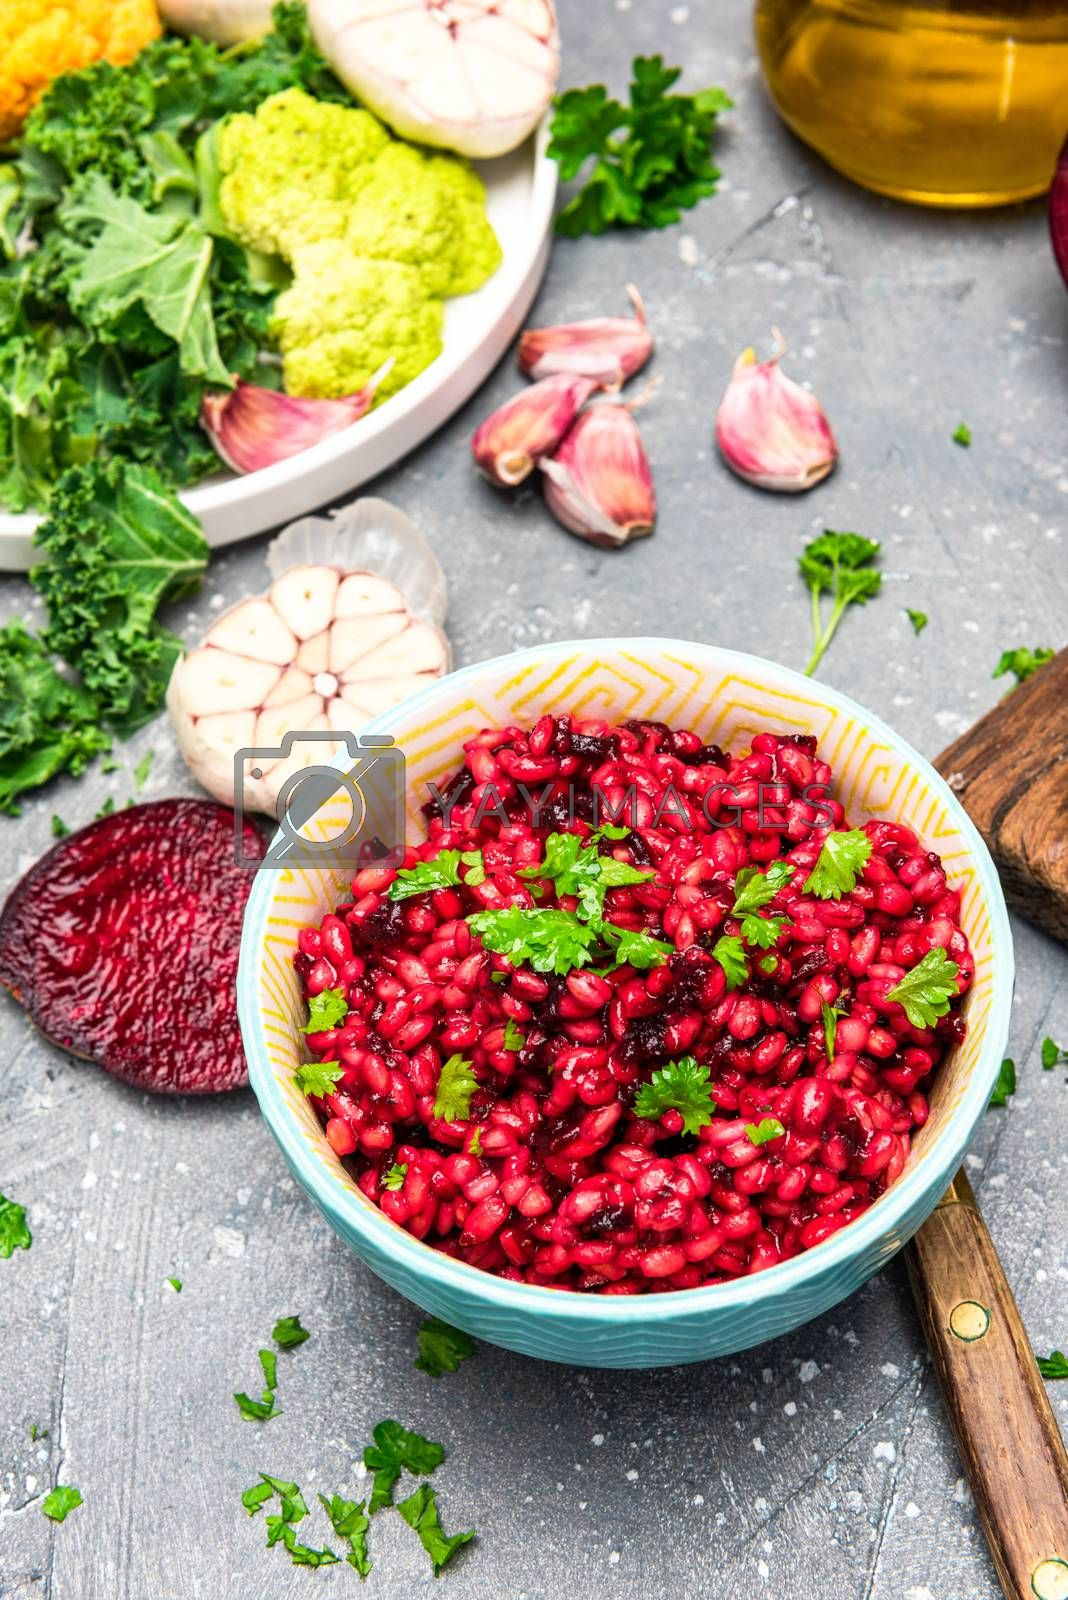 Healthy Eating. Vegetarian Brunch. Beetroot , Parsley and Groats in Bowl.